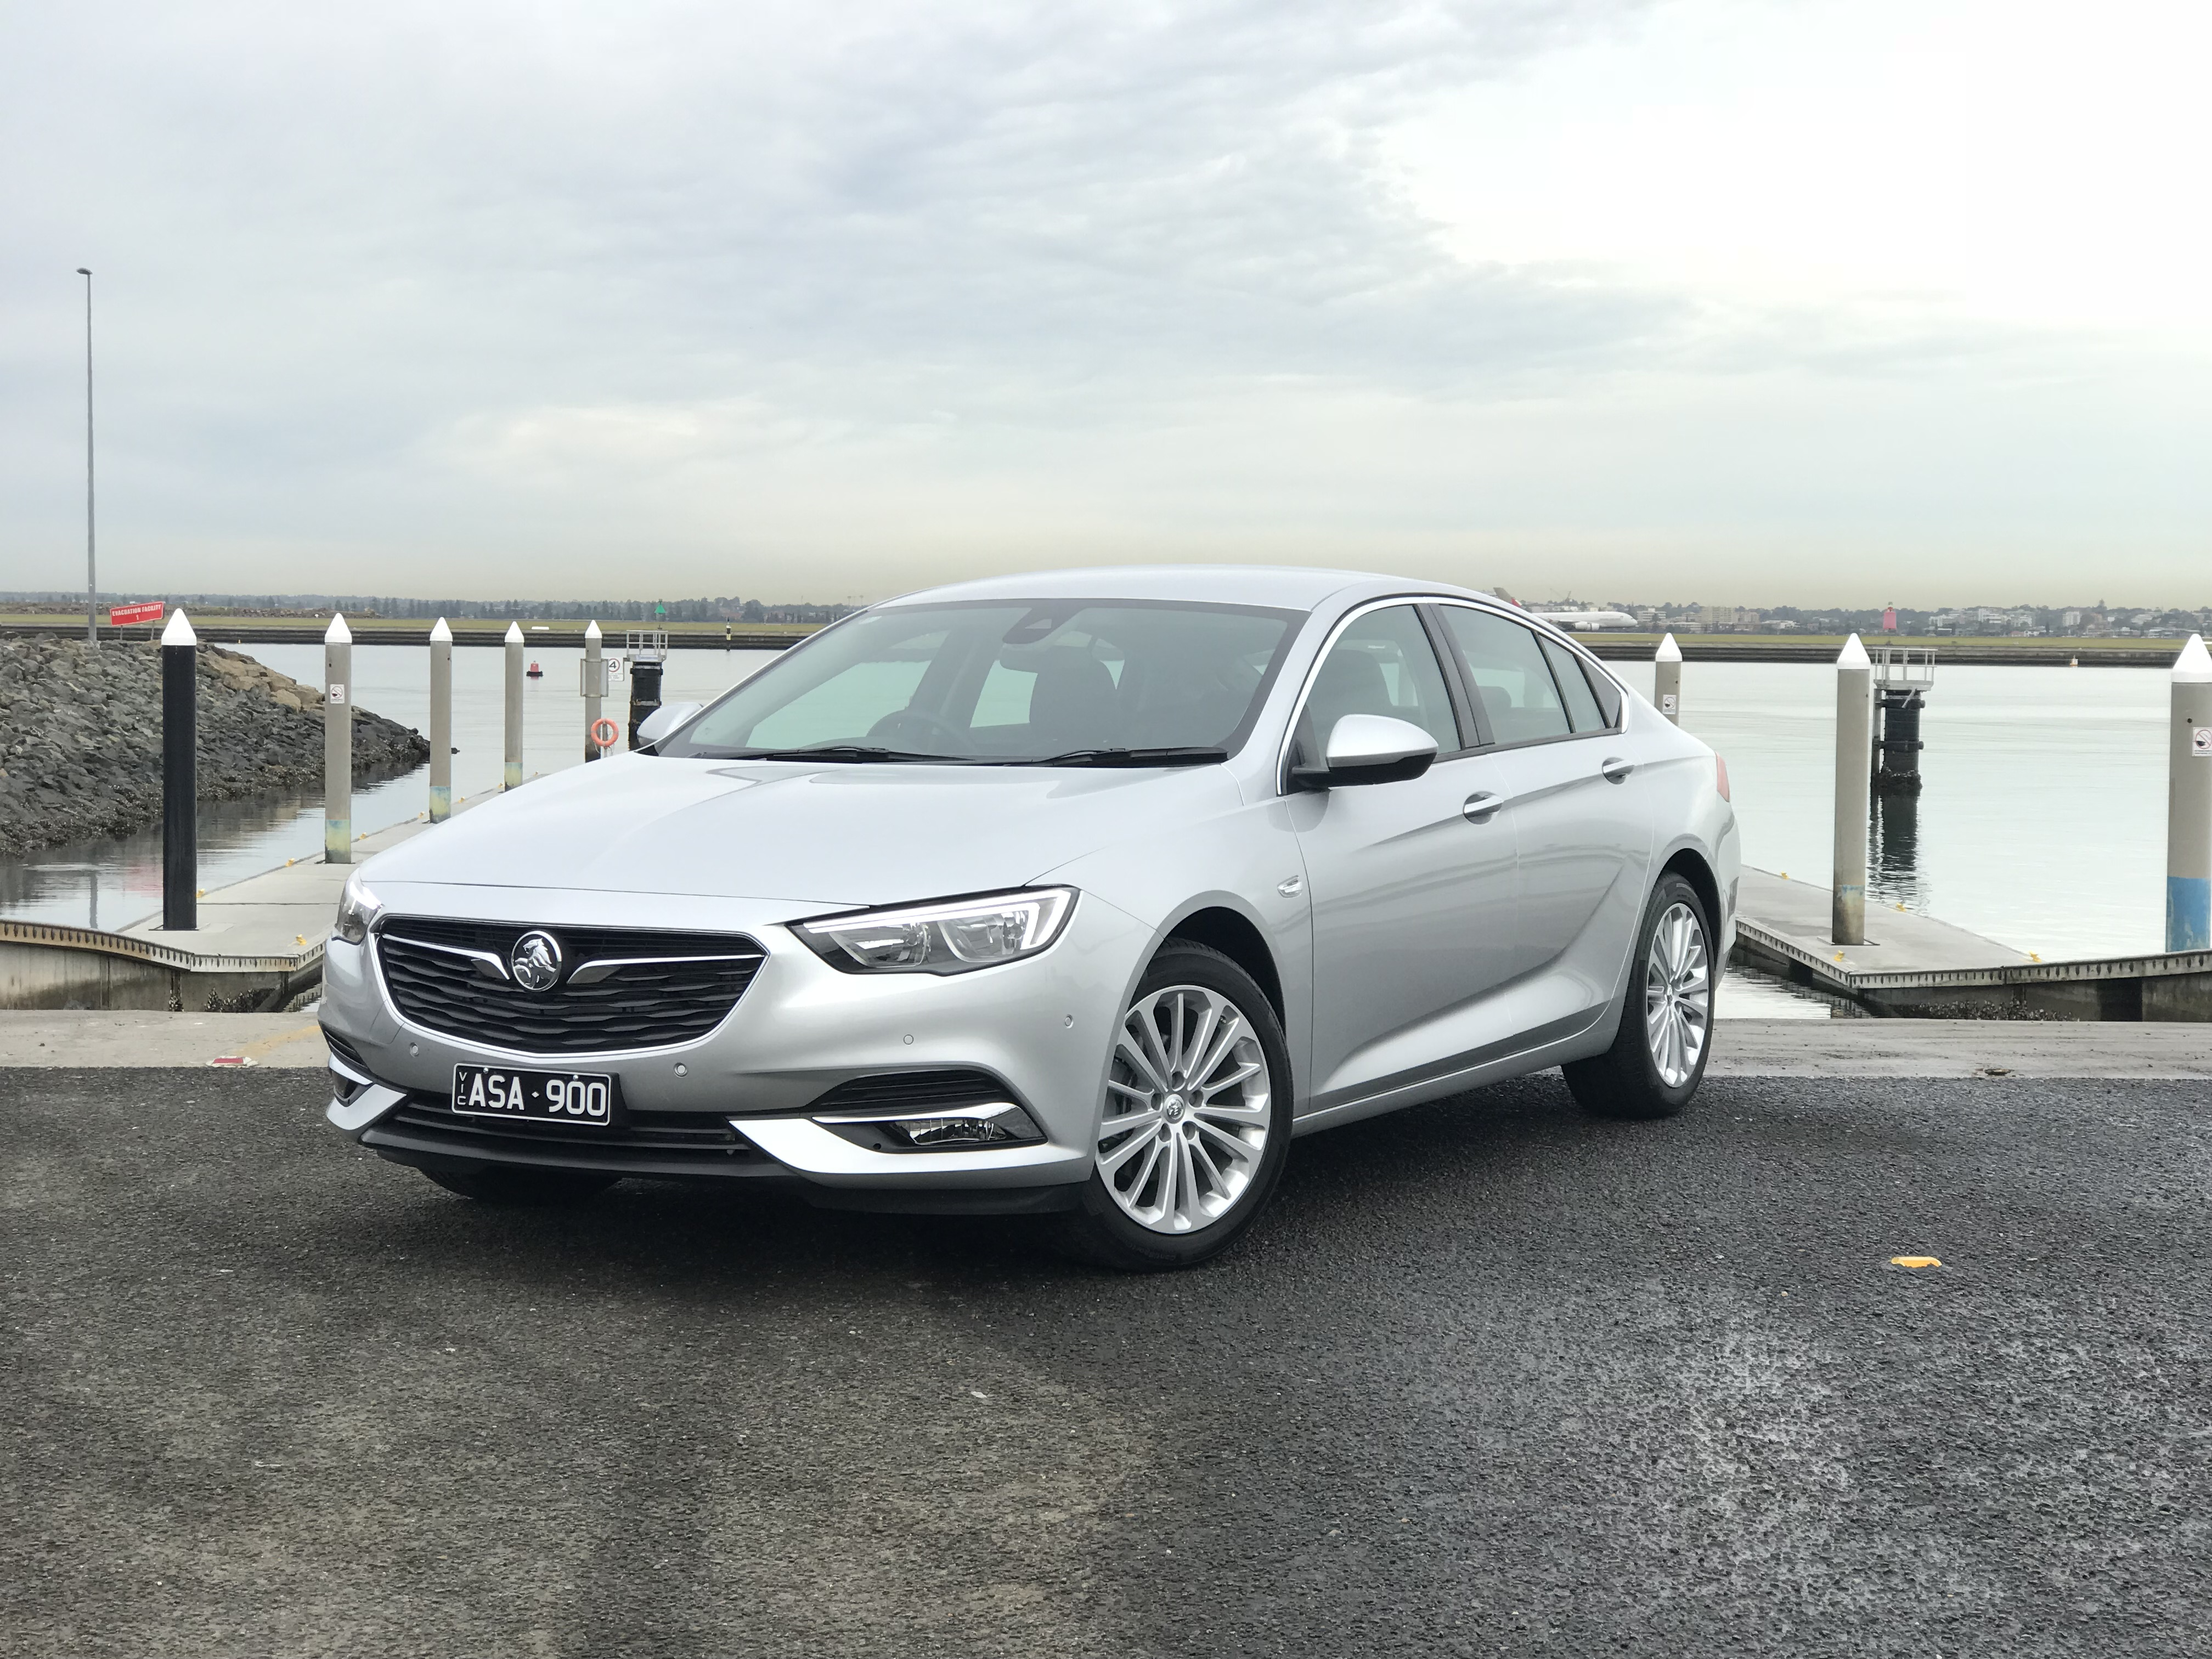 Holden's new Calais adds a touch of luxury to the ZB Commodore family.